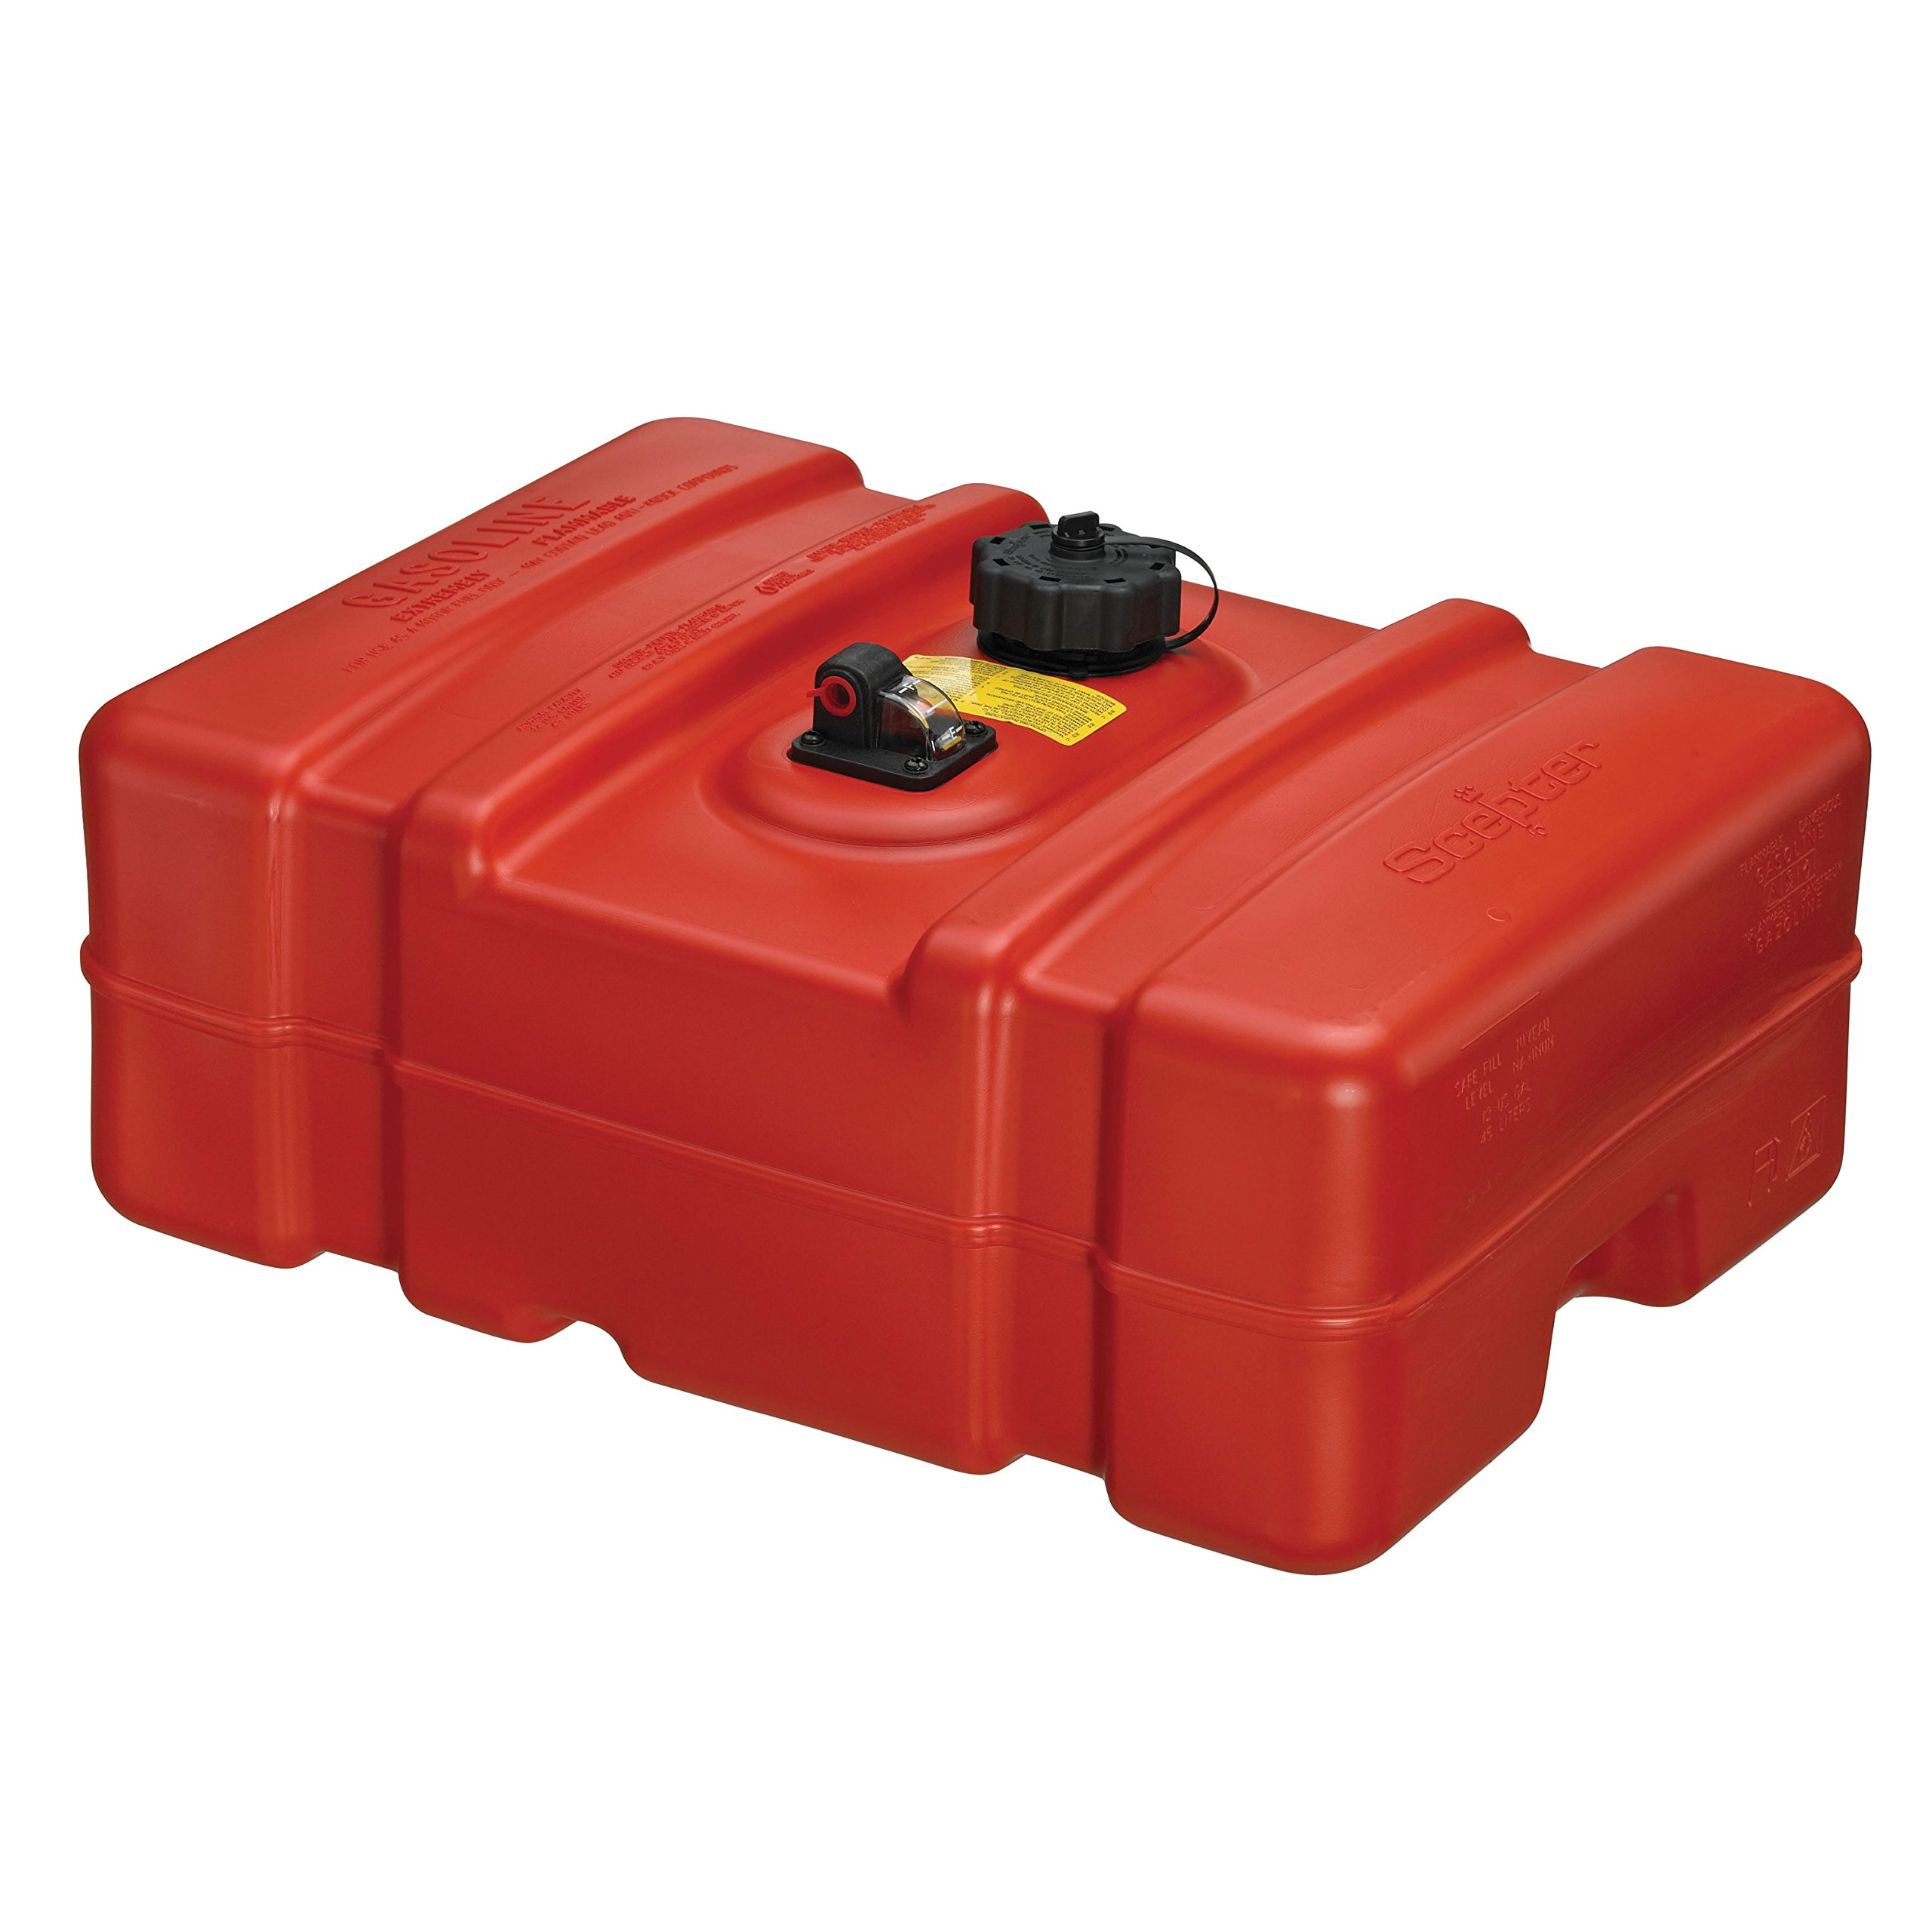 Moeller Scepter 08669 Rectangular Fuel Tank - 12 Gallon Low Profile